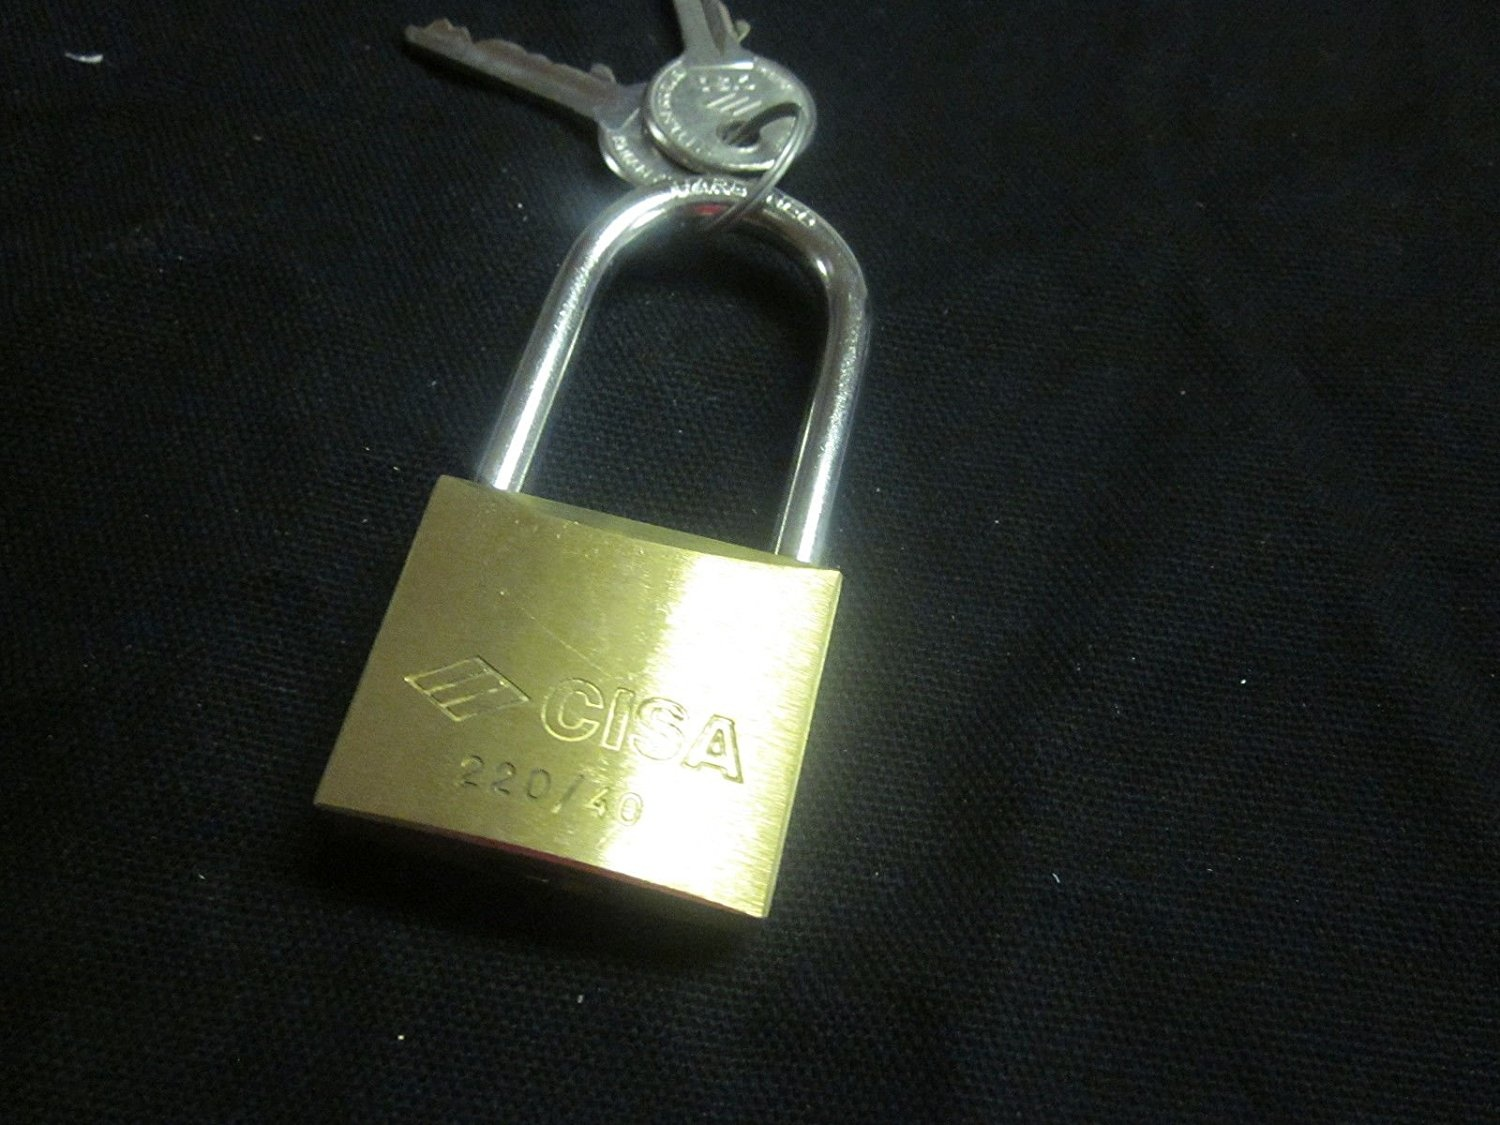 22011-40-PADLOCK-CISA-SOLID-BRASS-LOCK-220-40-MADE-IN-ITALY-LONG-SHACKLE